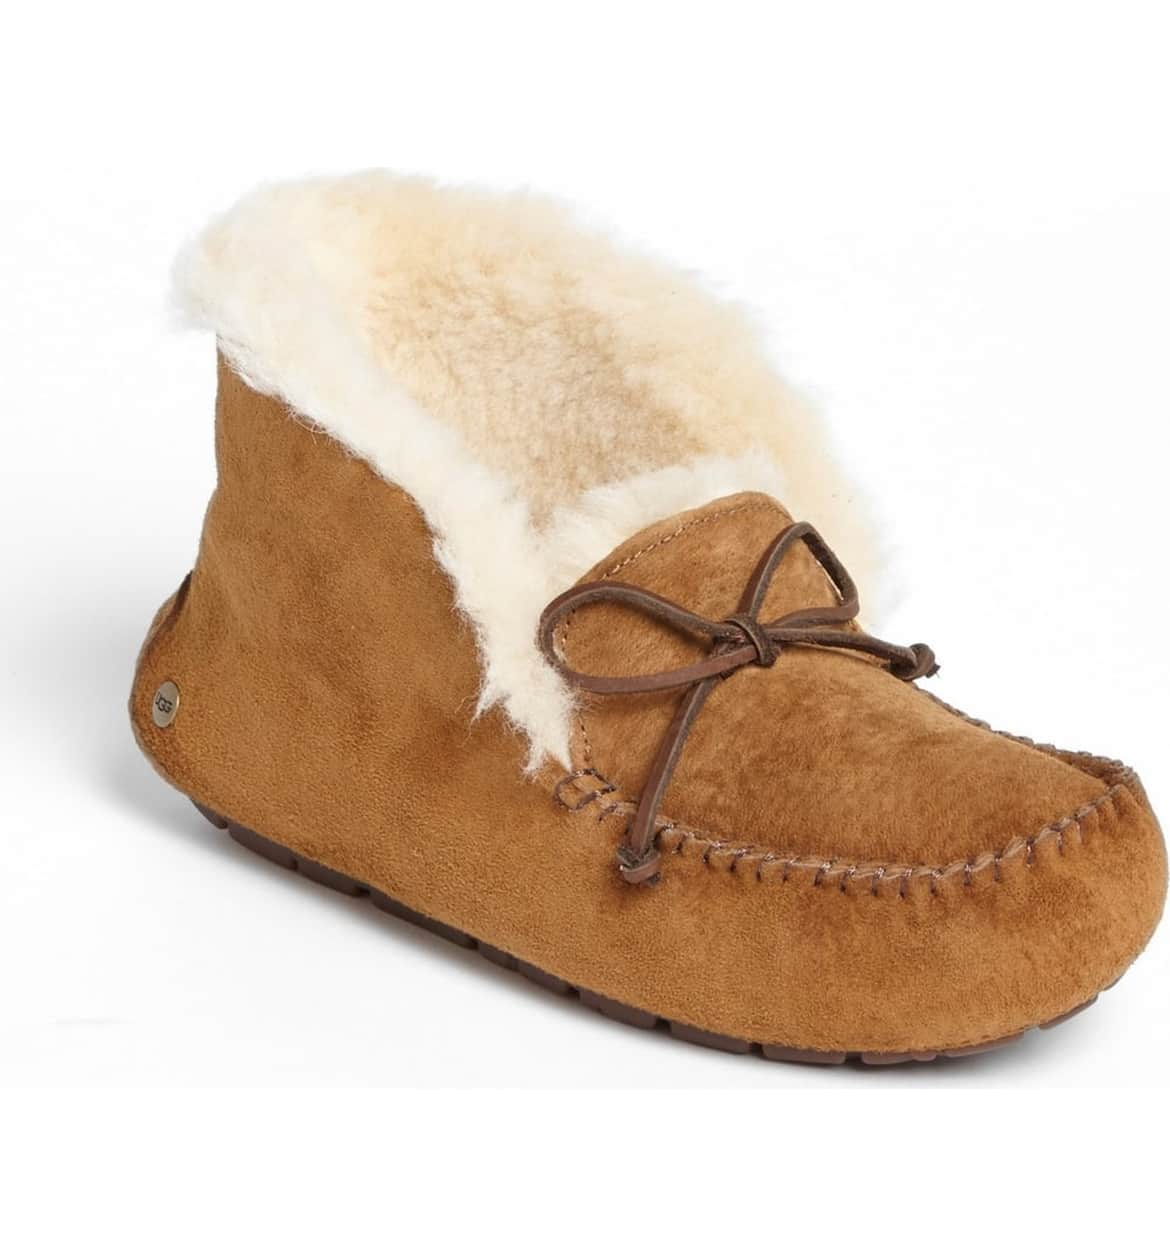 0483fac7943 Slippers-YES or NO  These are the go-to house shoes I ve had for years.  They re on the pricey side